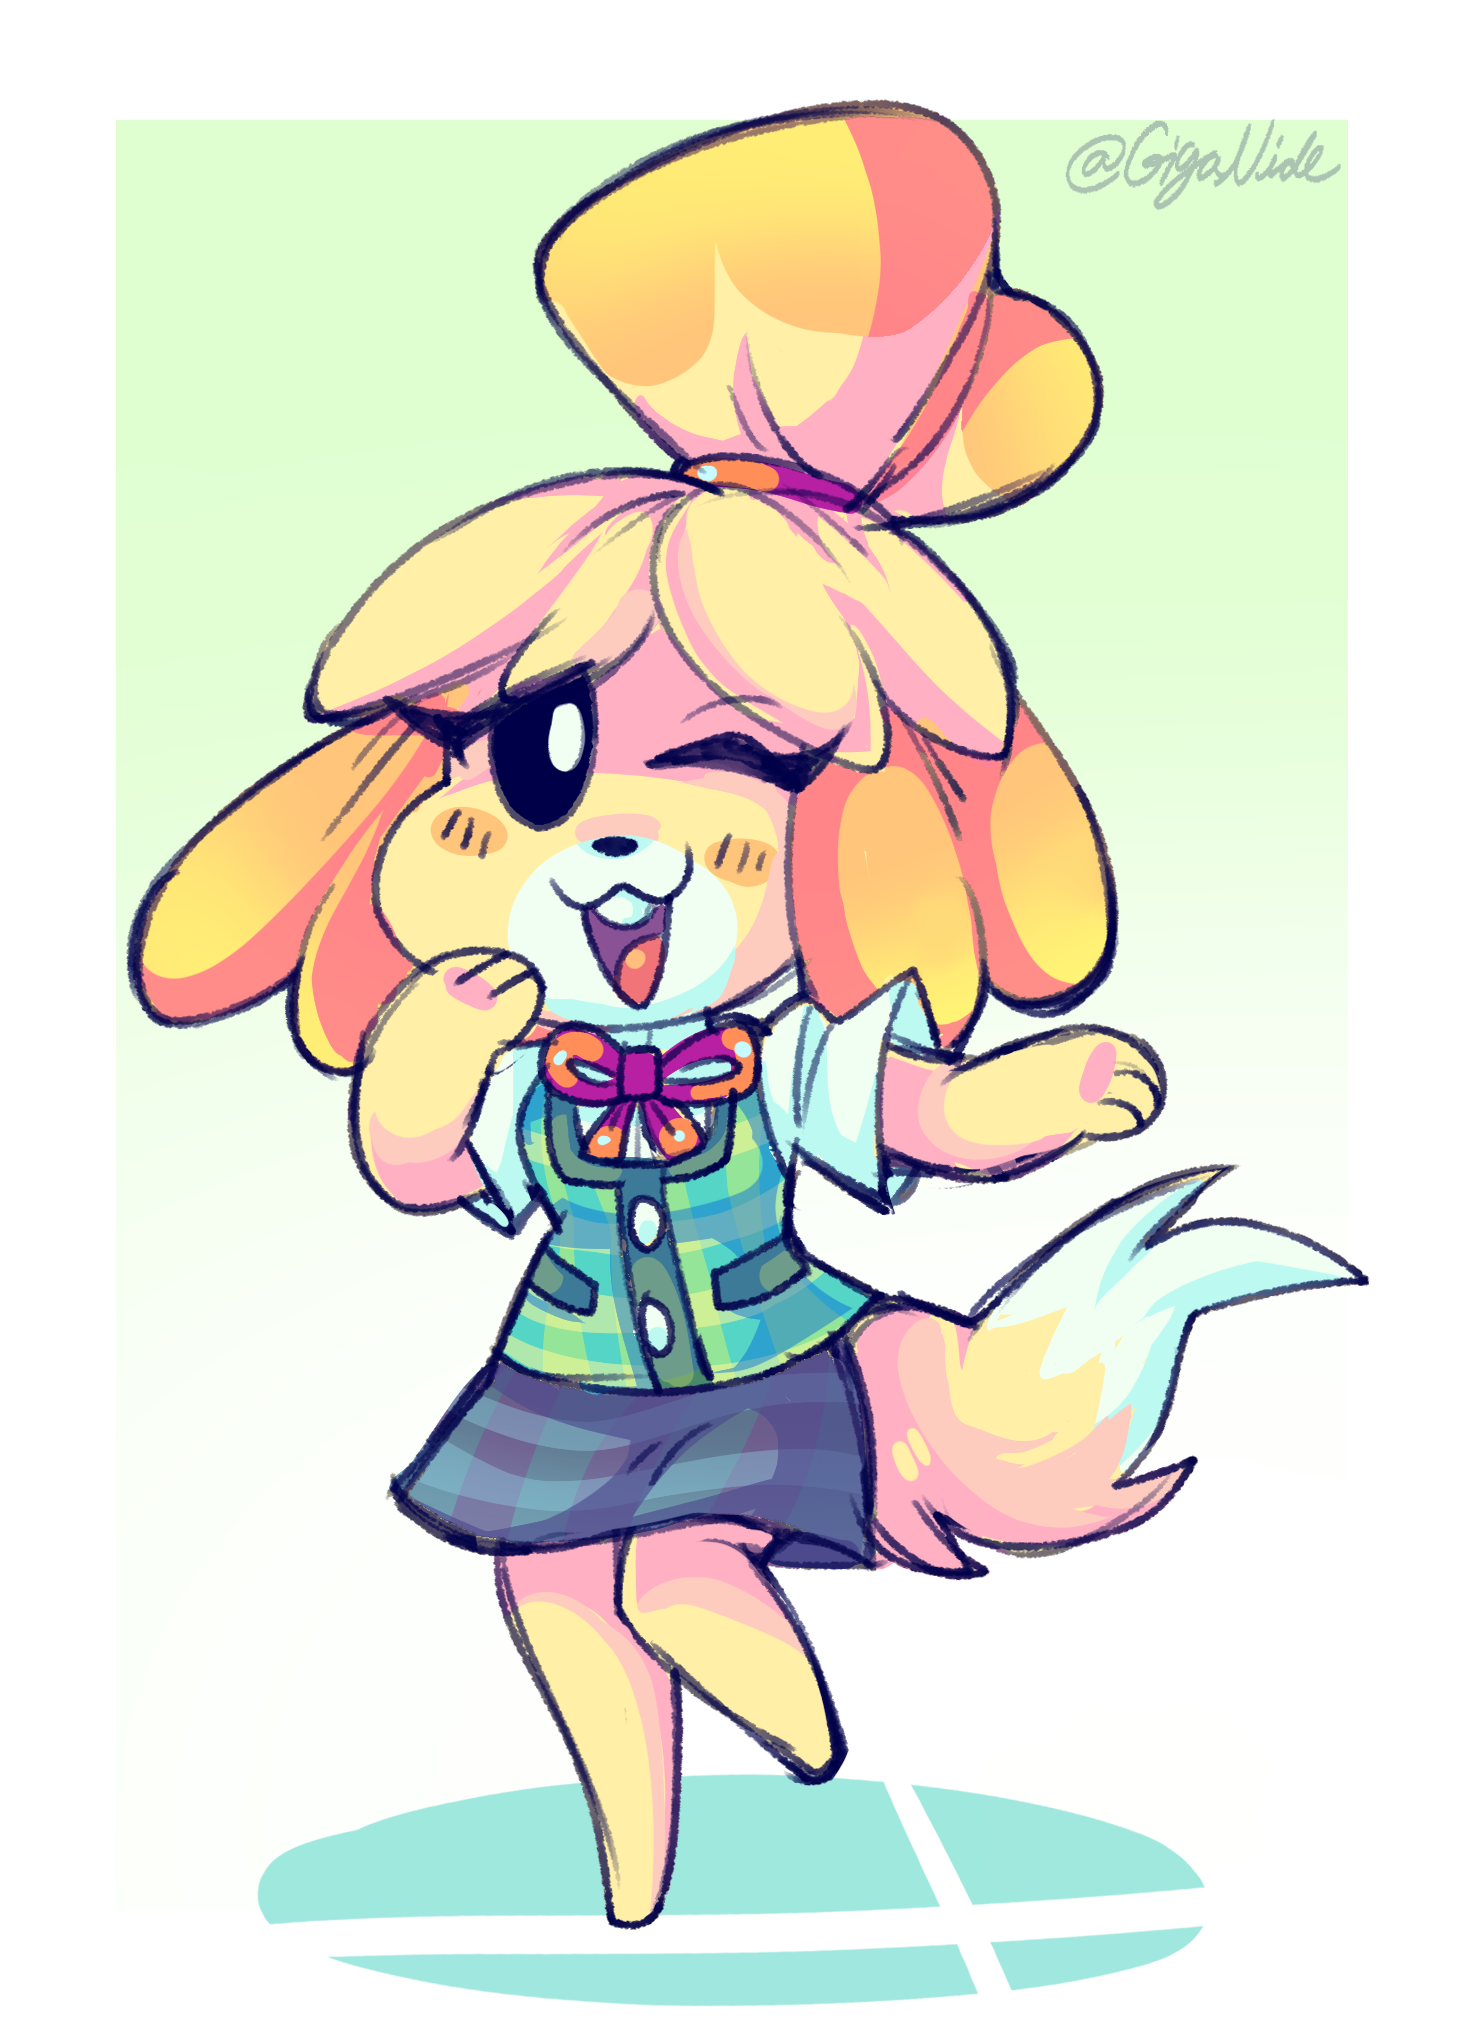 Welcome to Smash, Isabelle!